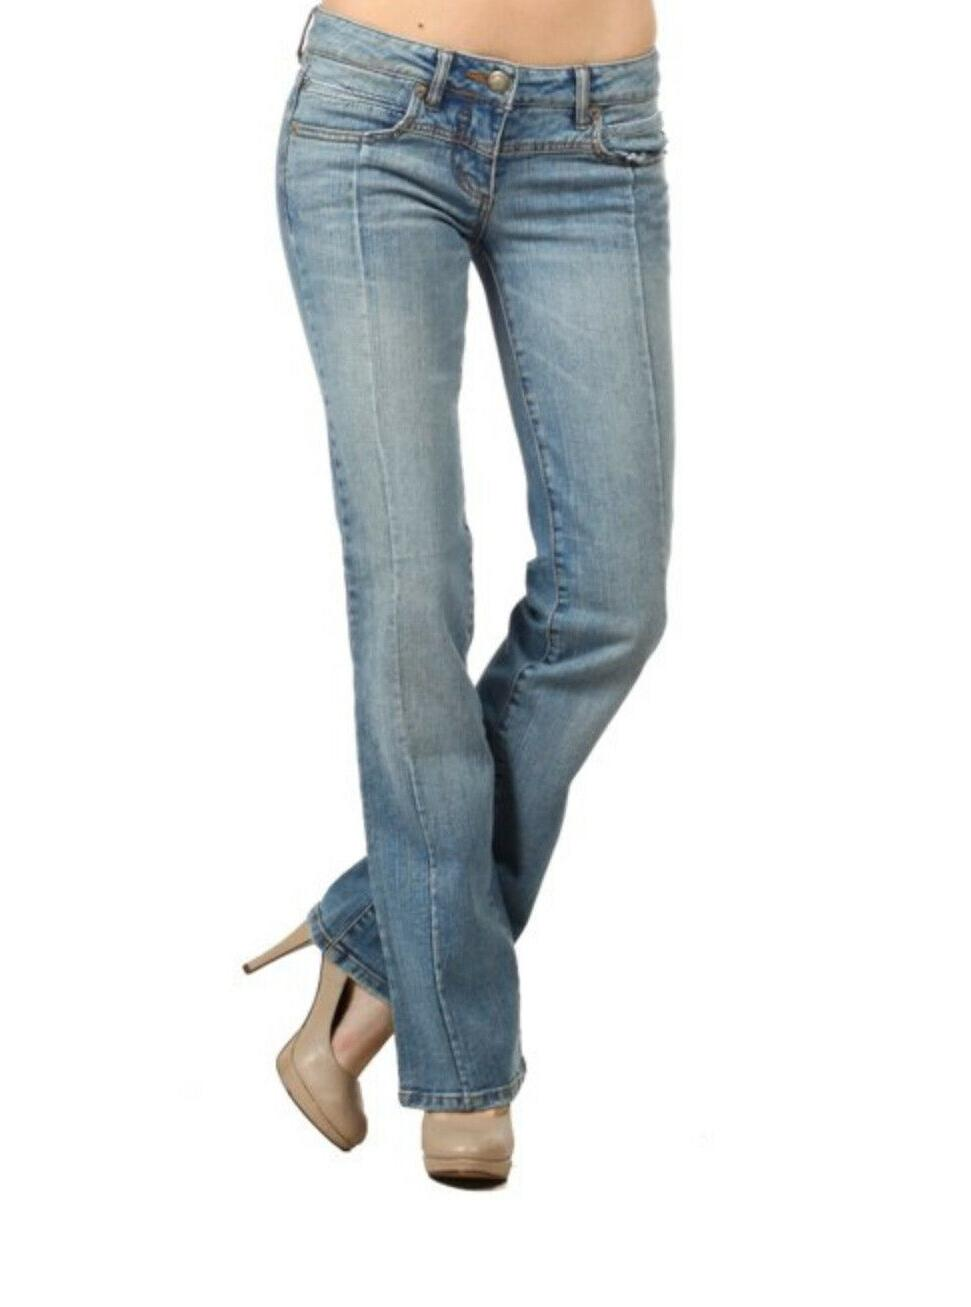 Women's bell bottom denim jeans stretchy comfortable flare